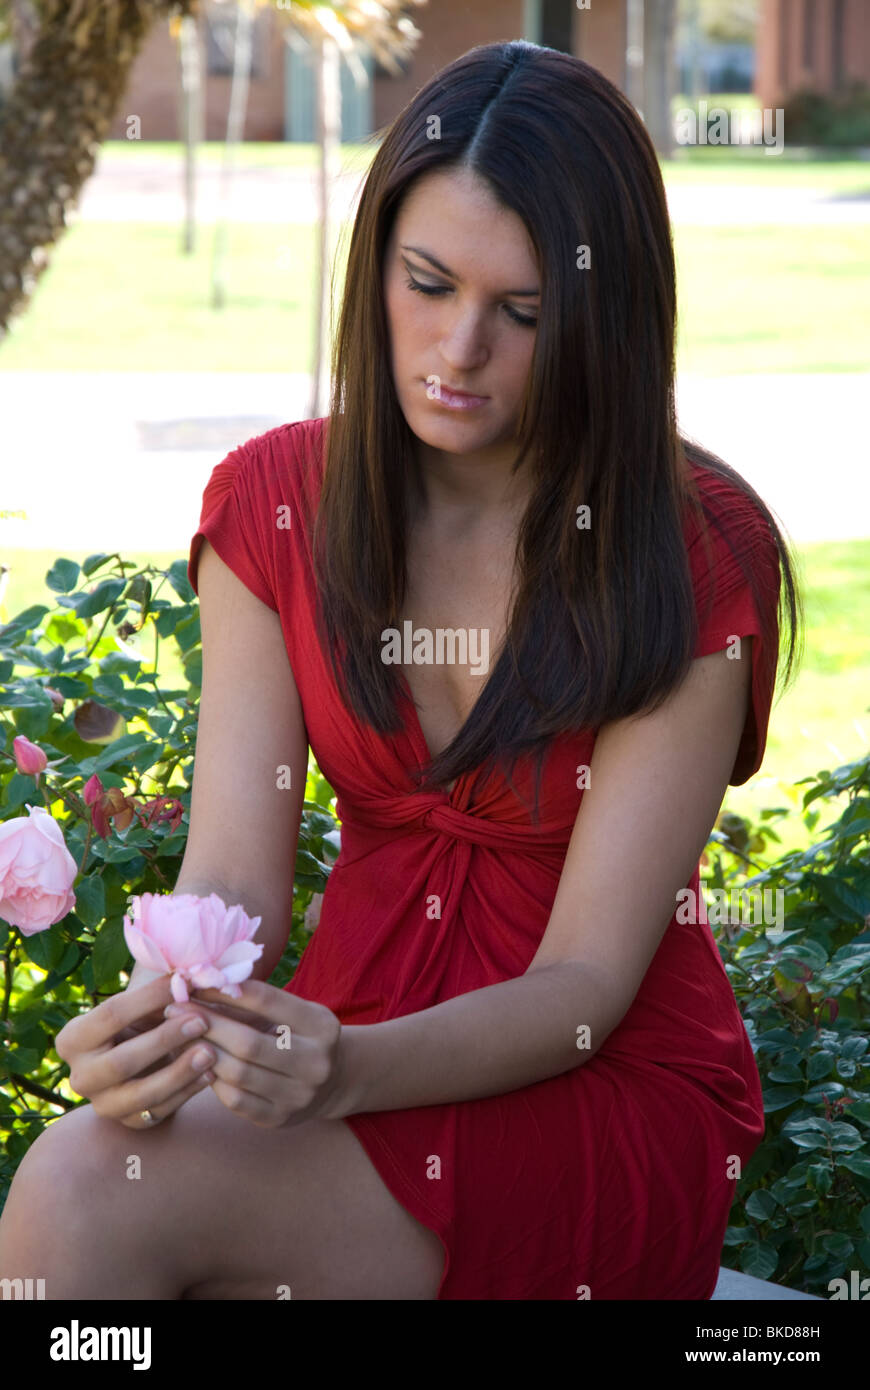 A young adult college age woman looks sadly at a flower. - Stock Image